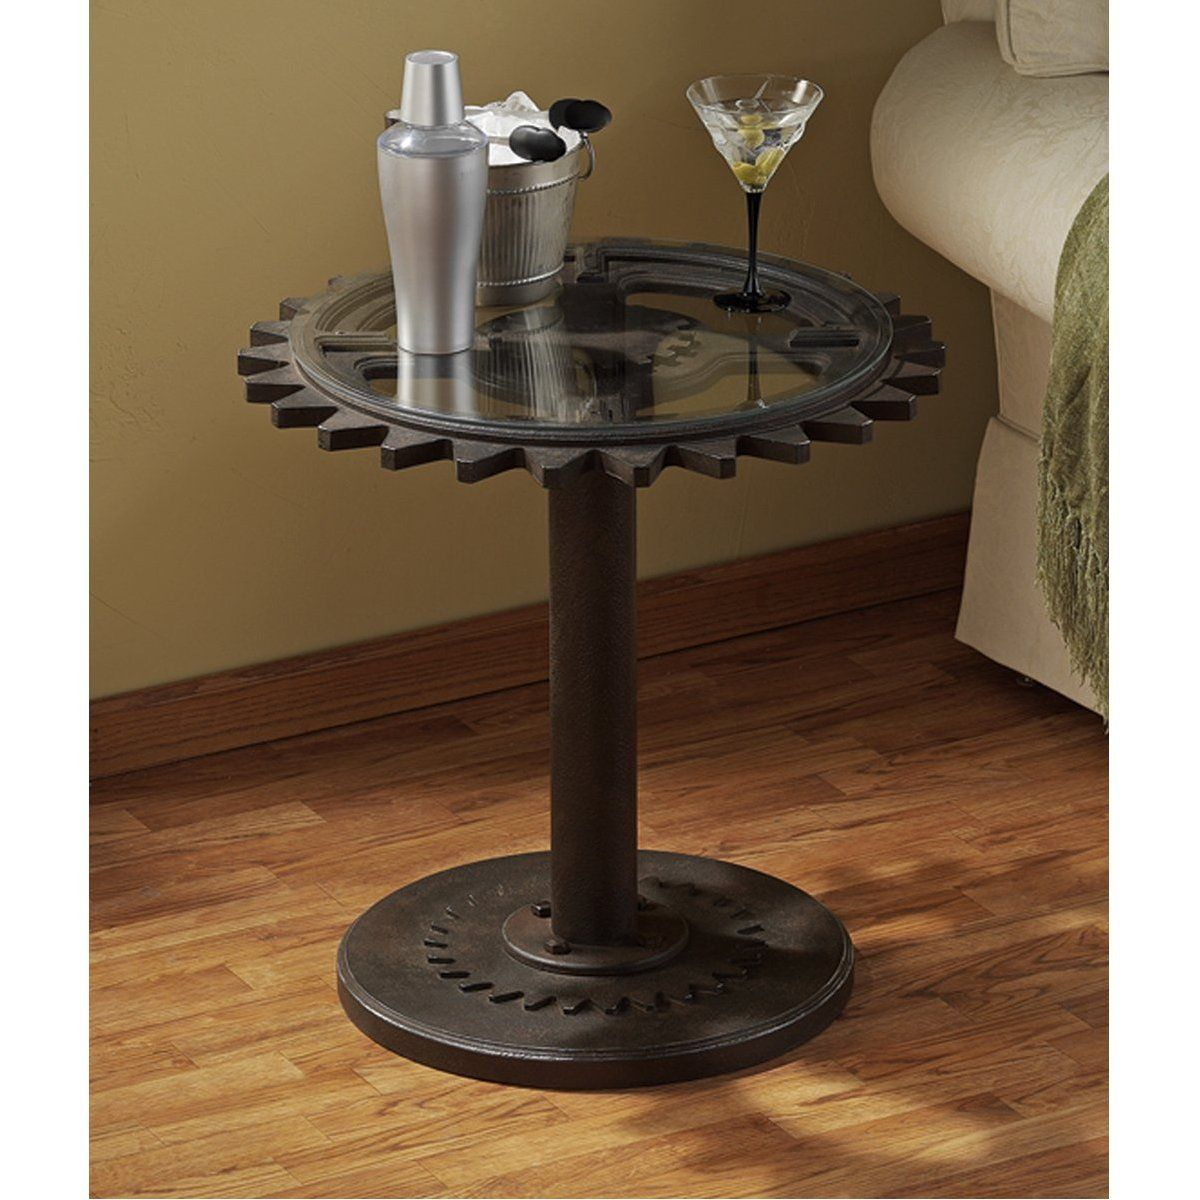 Steampunk End Table